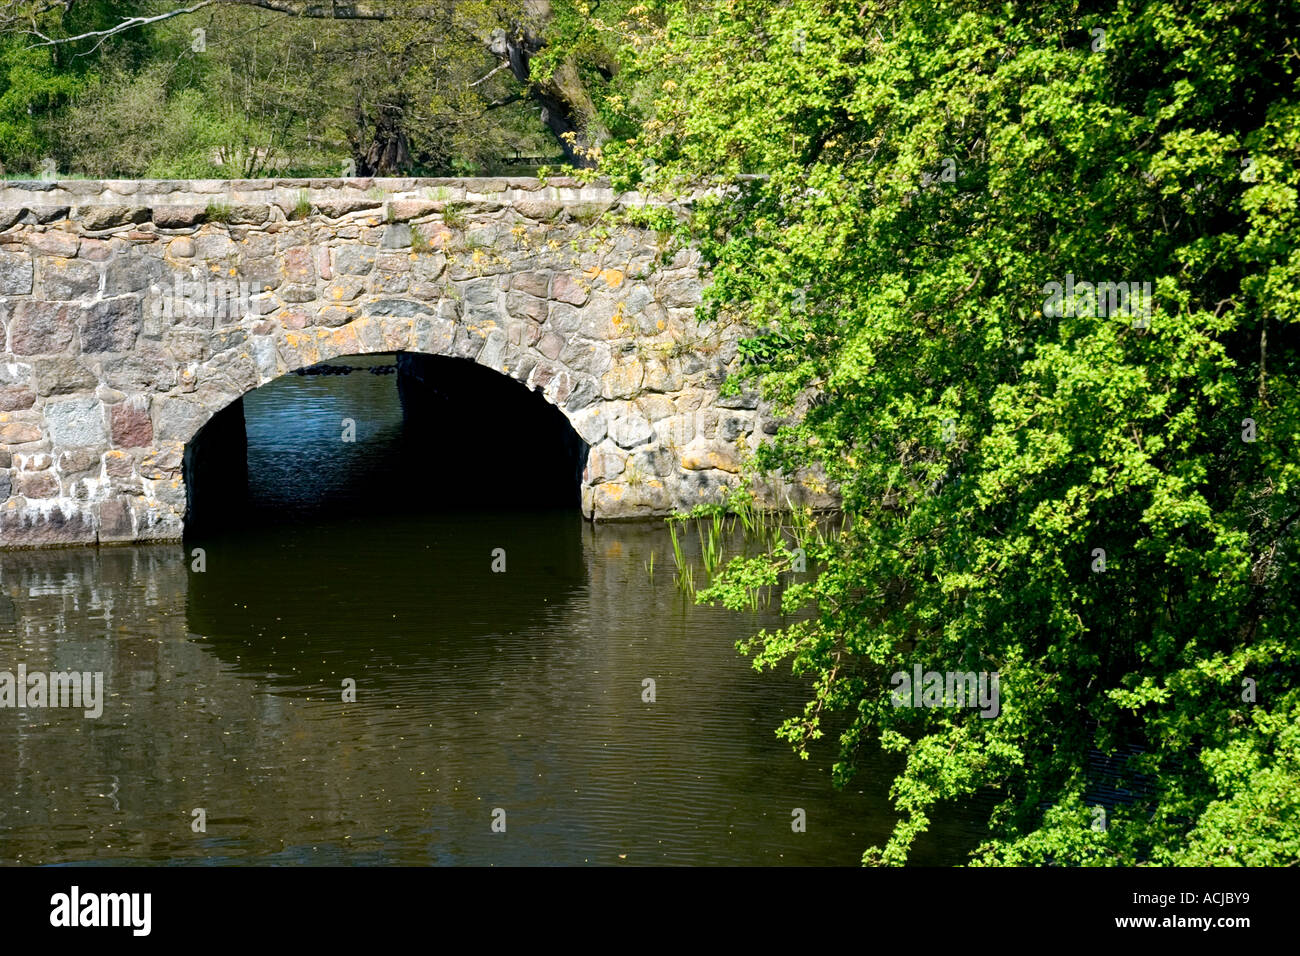 Old stone bridge Frederiksborg Royal Castle hilleroed Zealand Denmark - Stock Image